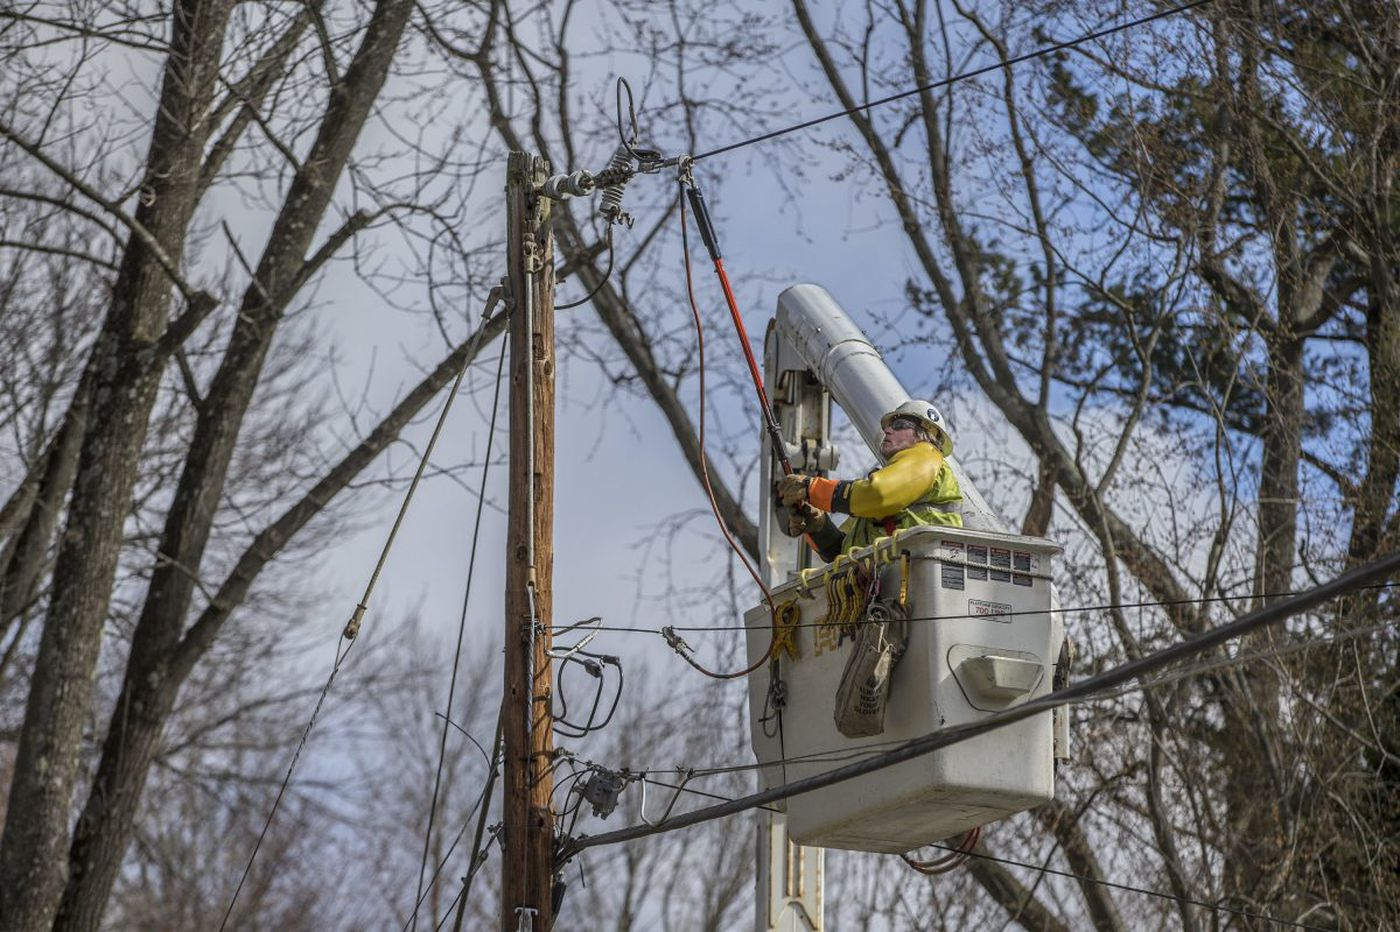 Friday's storm triggers a scramble to restore power, transit, and schools